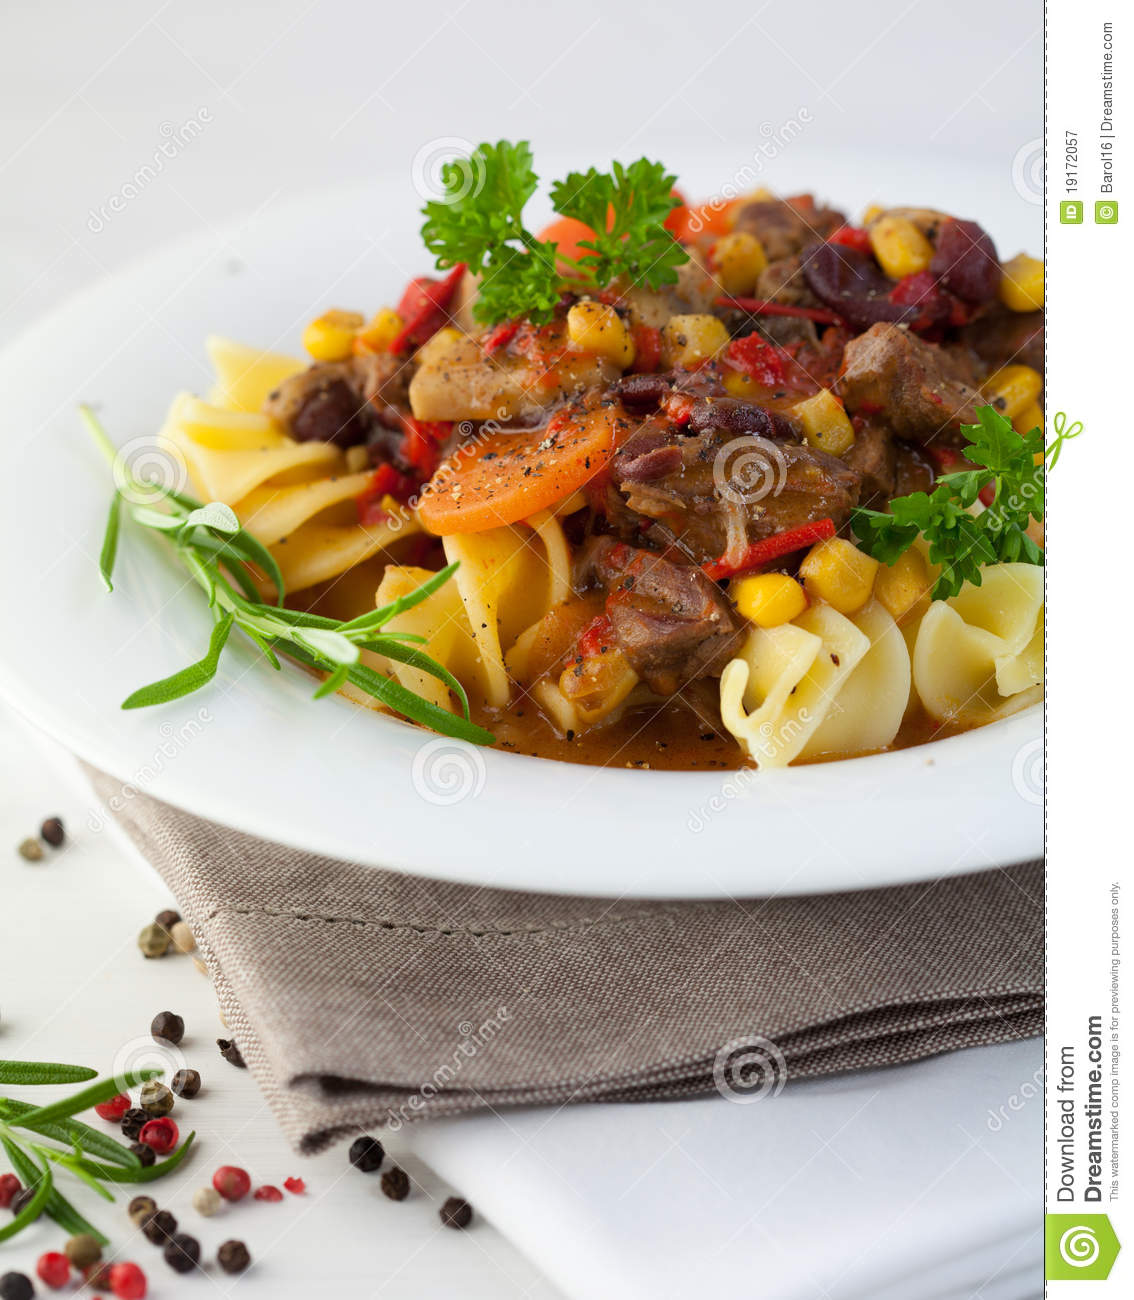 Beef Goulash With Pasta Royalty Free Stock Photography - Image ...